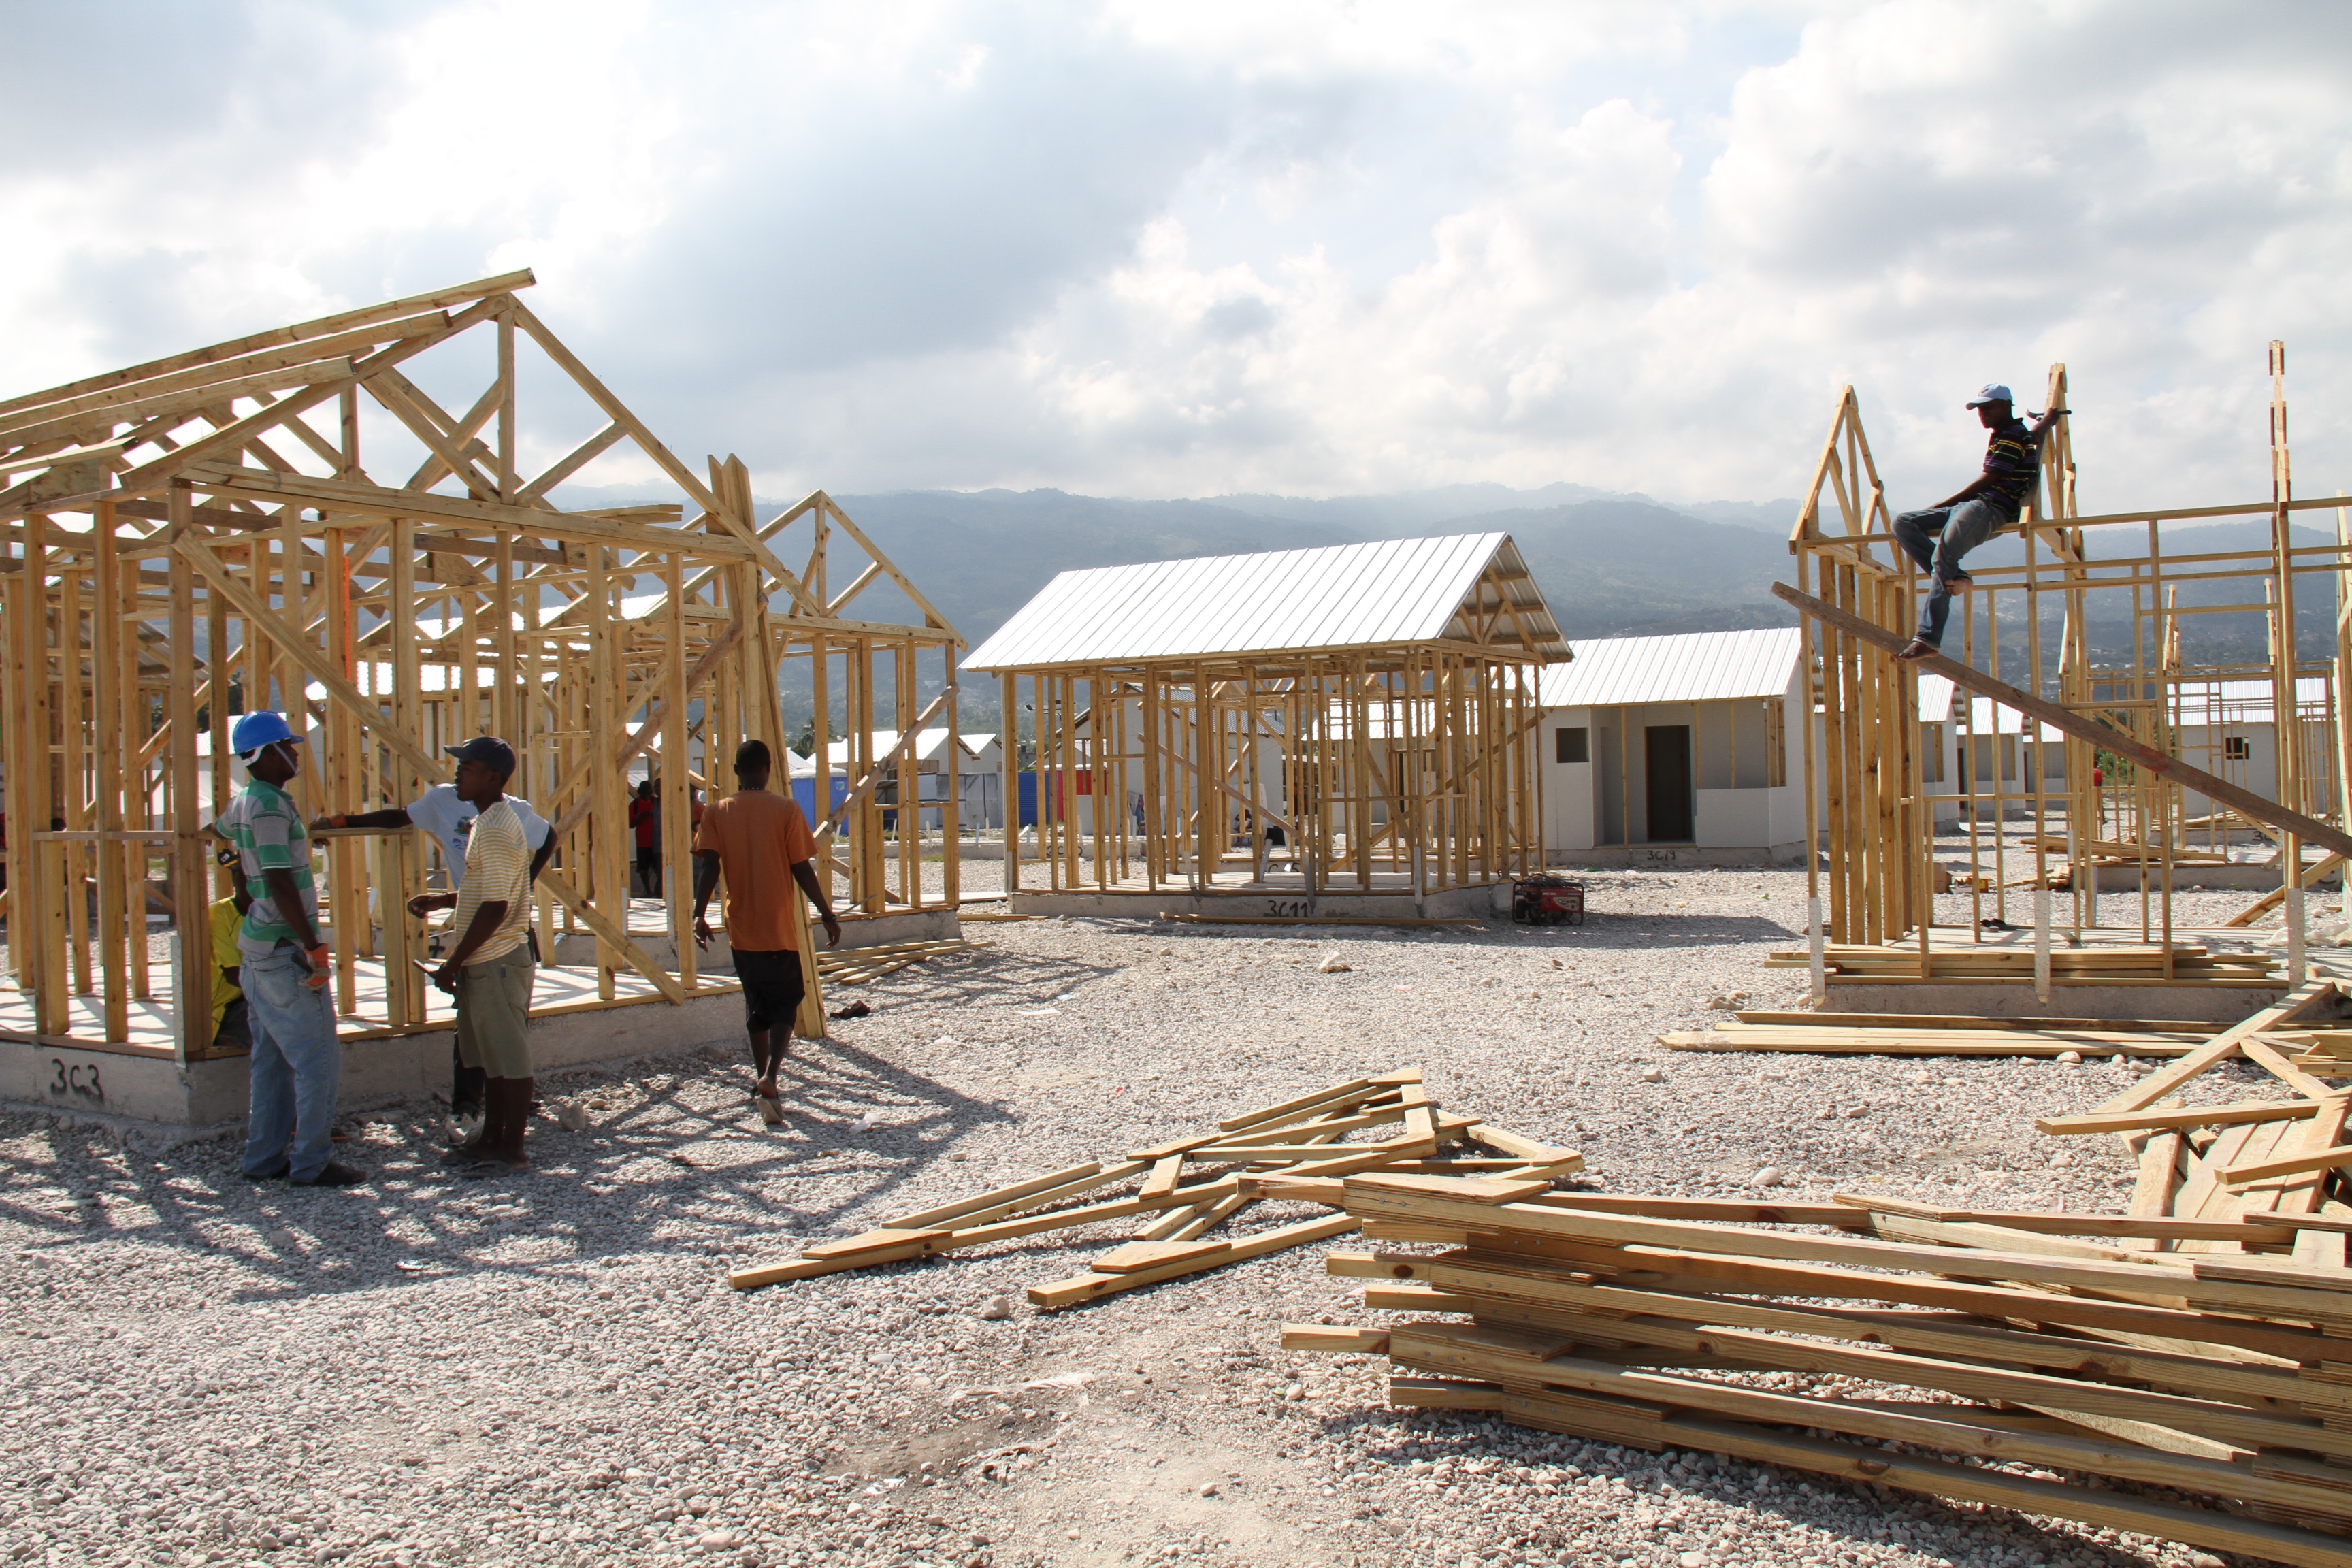 Temporary homes being constructed in Tabarre Issa, Port au Prince for families left homless by the 2010 earthquake.